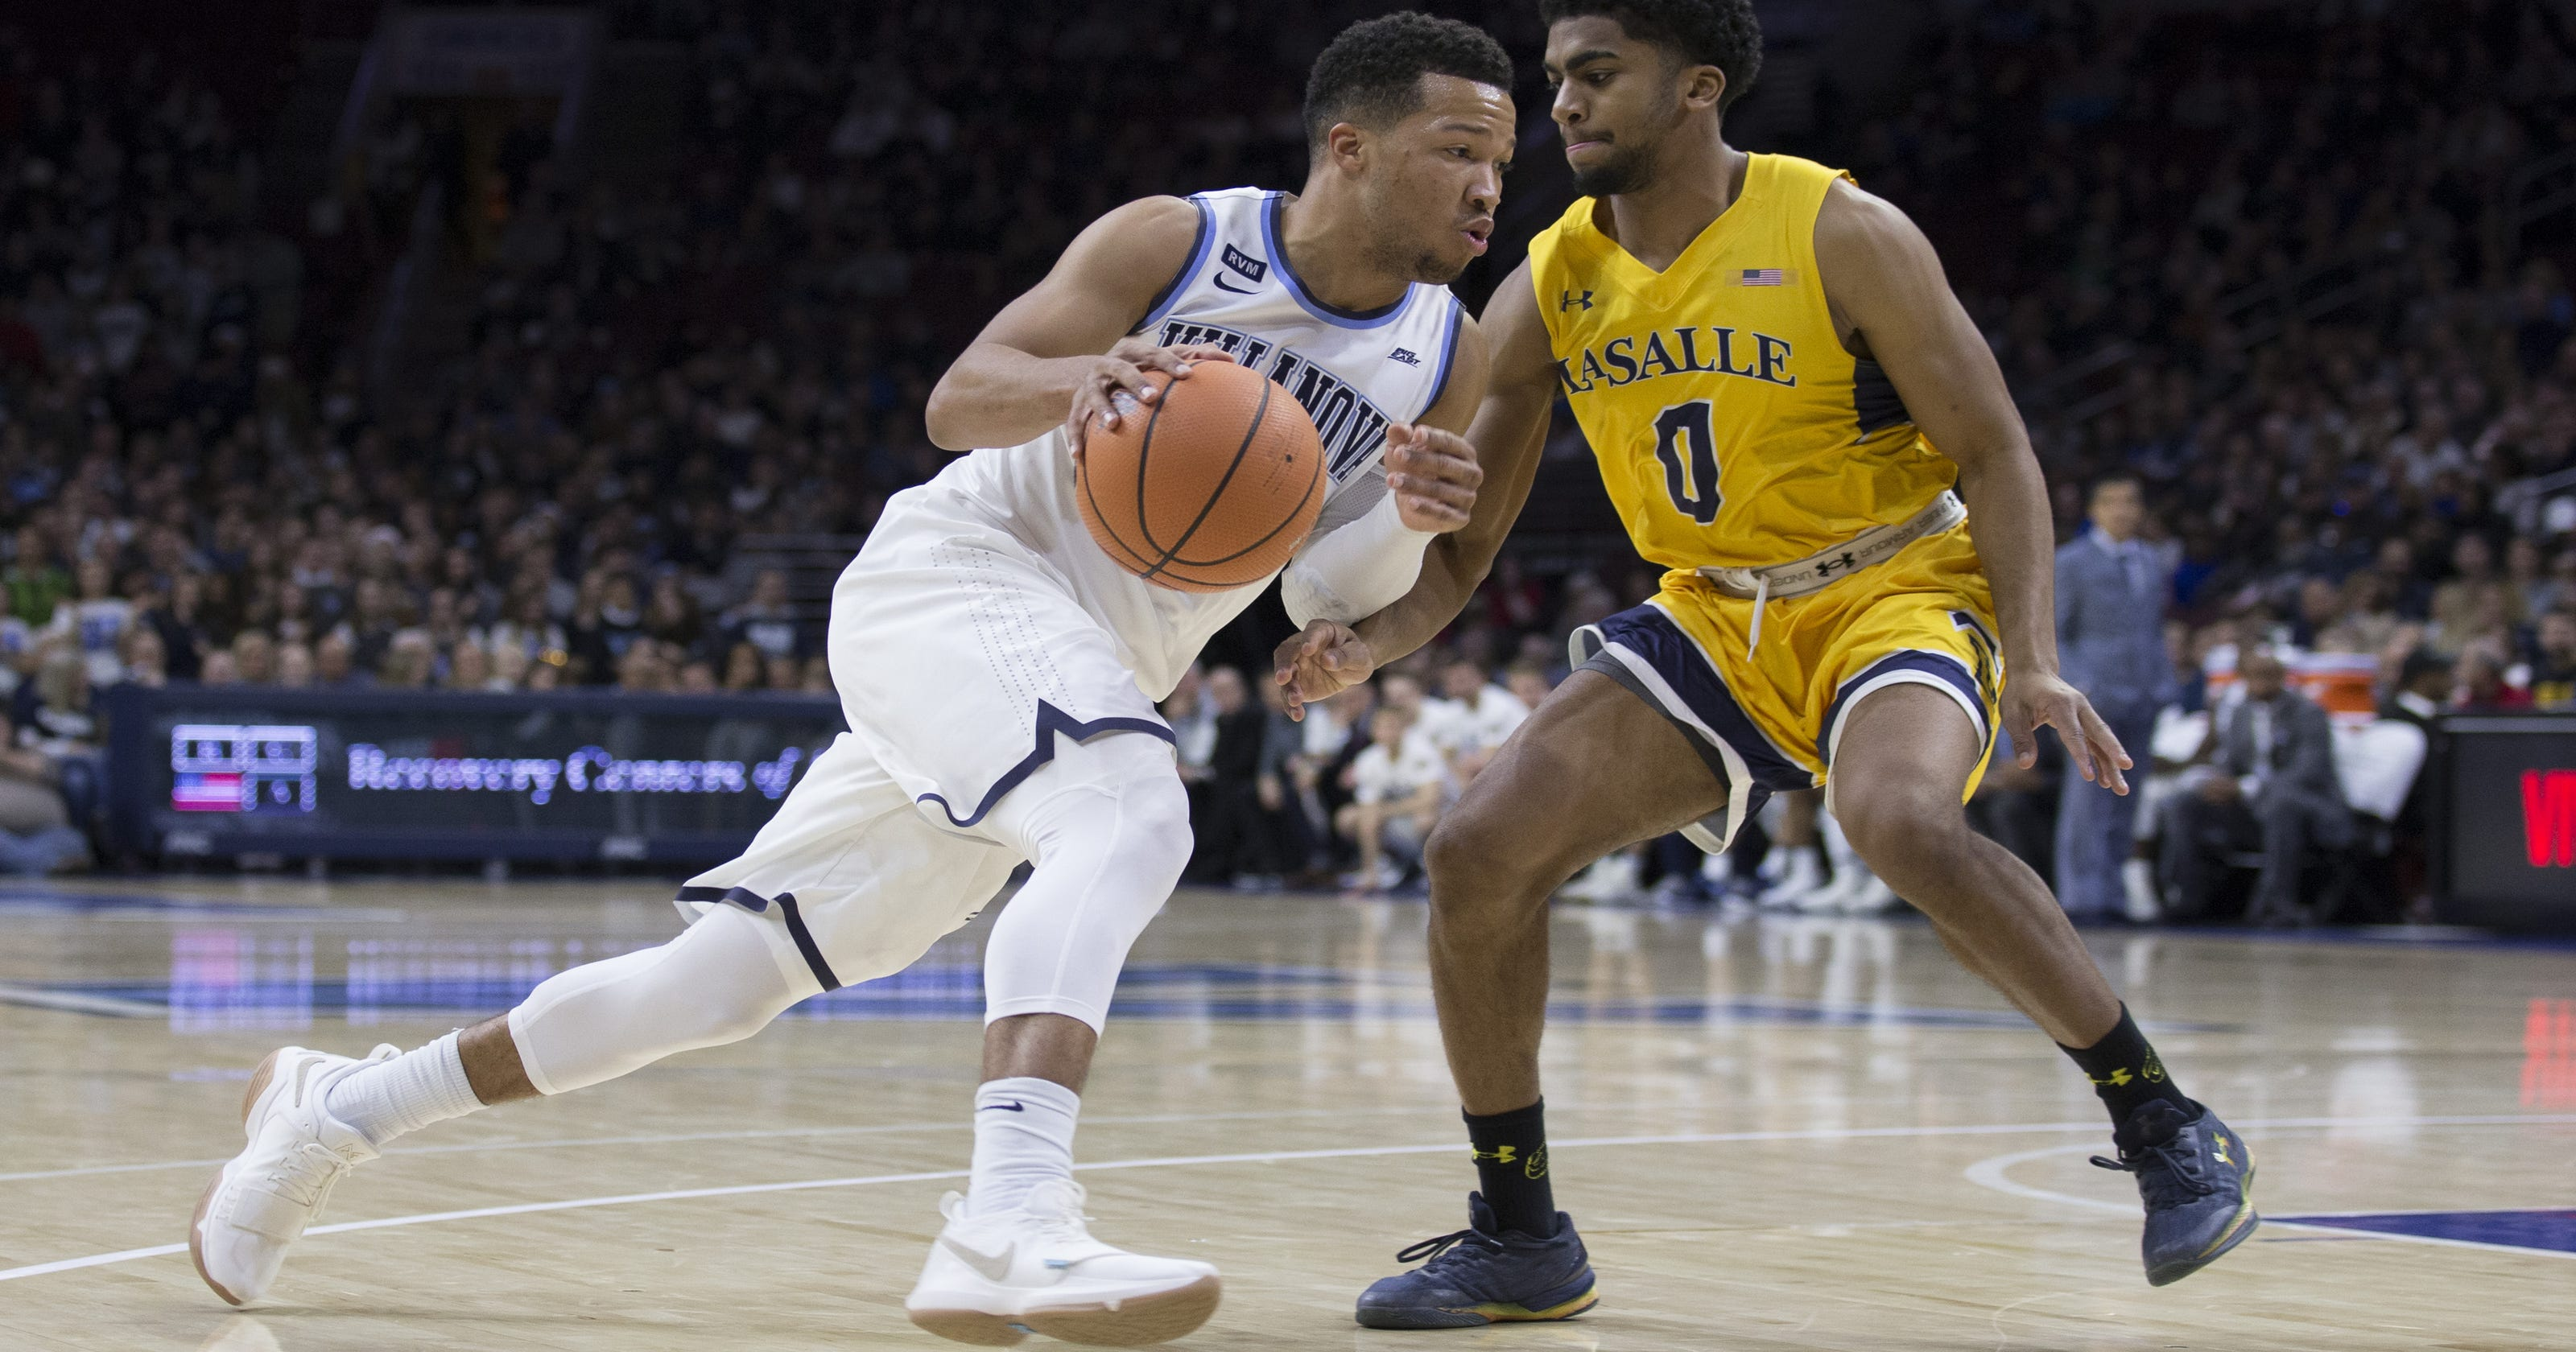 villanova s jalen brunson honored as usa today sports player of the year